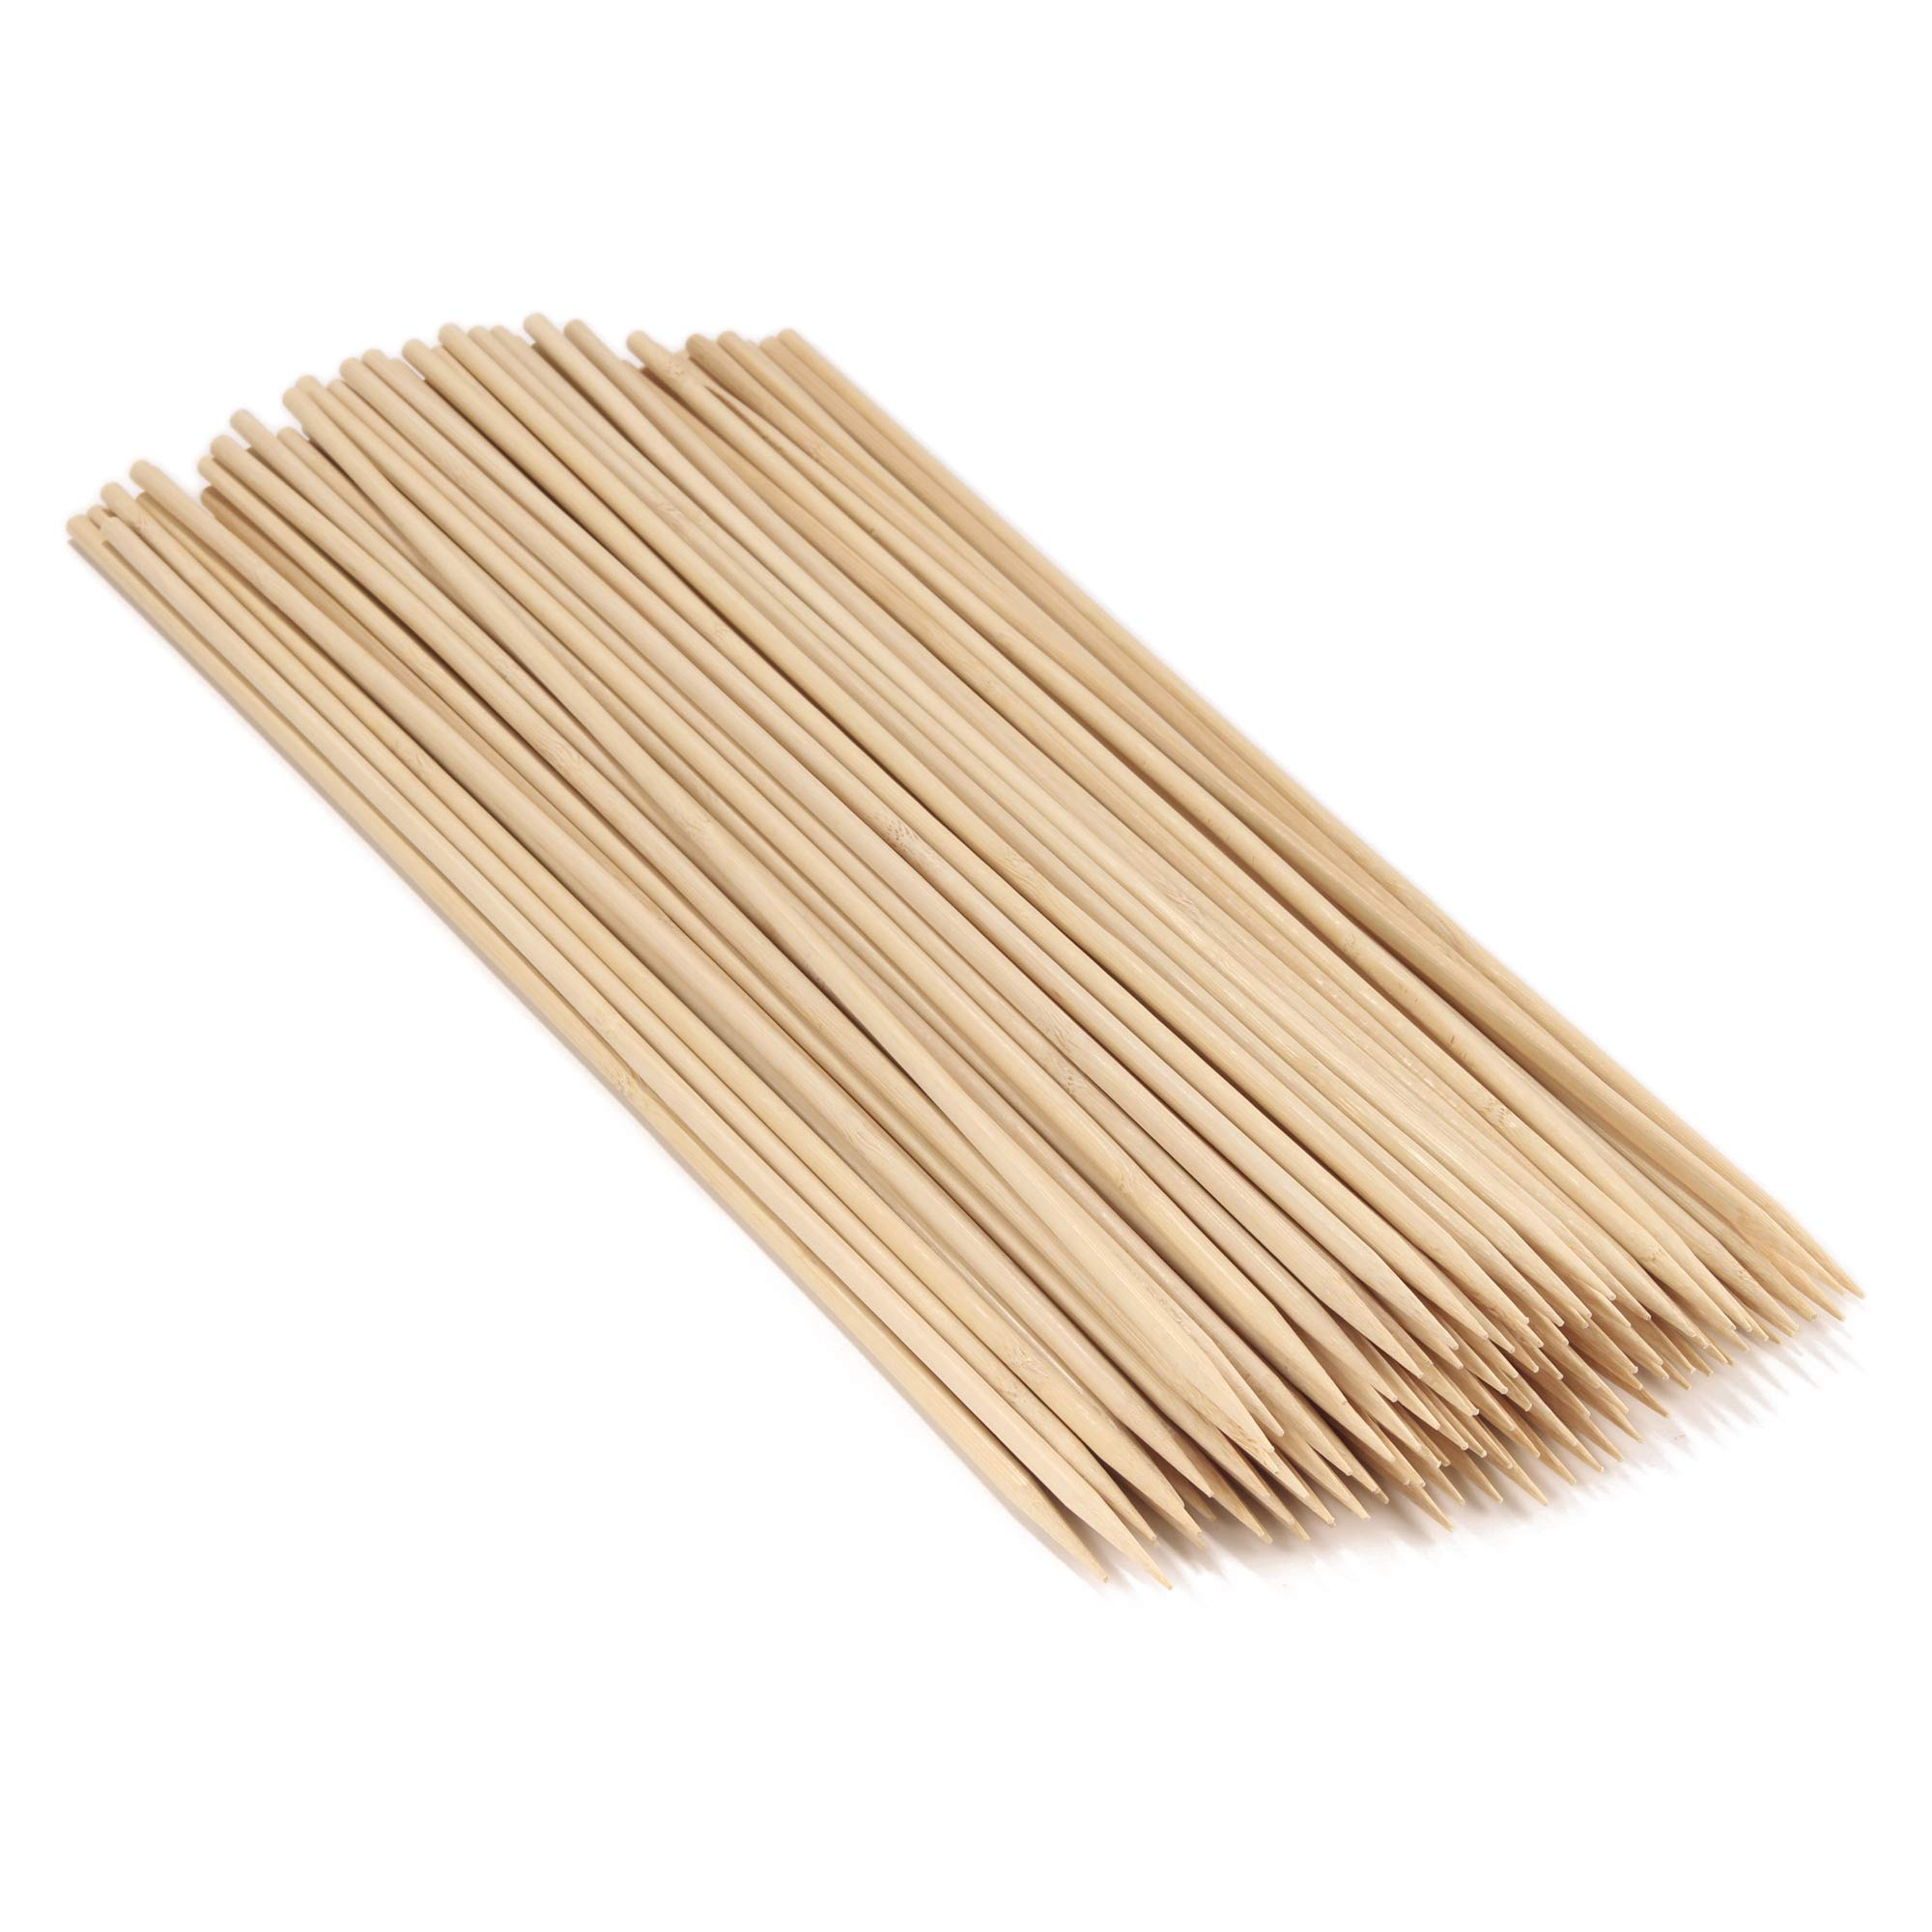 BambooMN 17.3'' Long x 5mm Thick Sharp Point Bamboo Kabab Satay BBQ Skewers Party Supplies, 100 Pieces by BambooMN